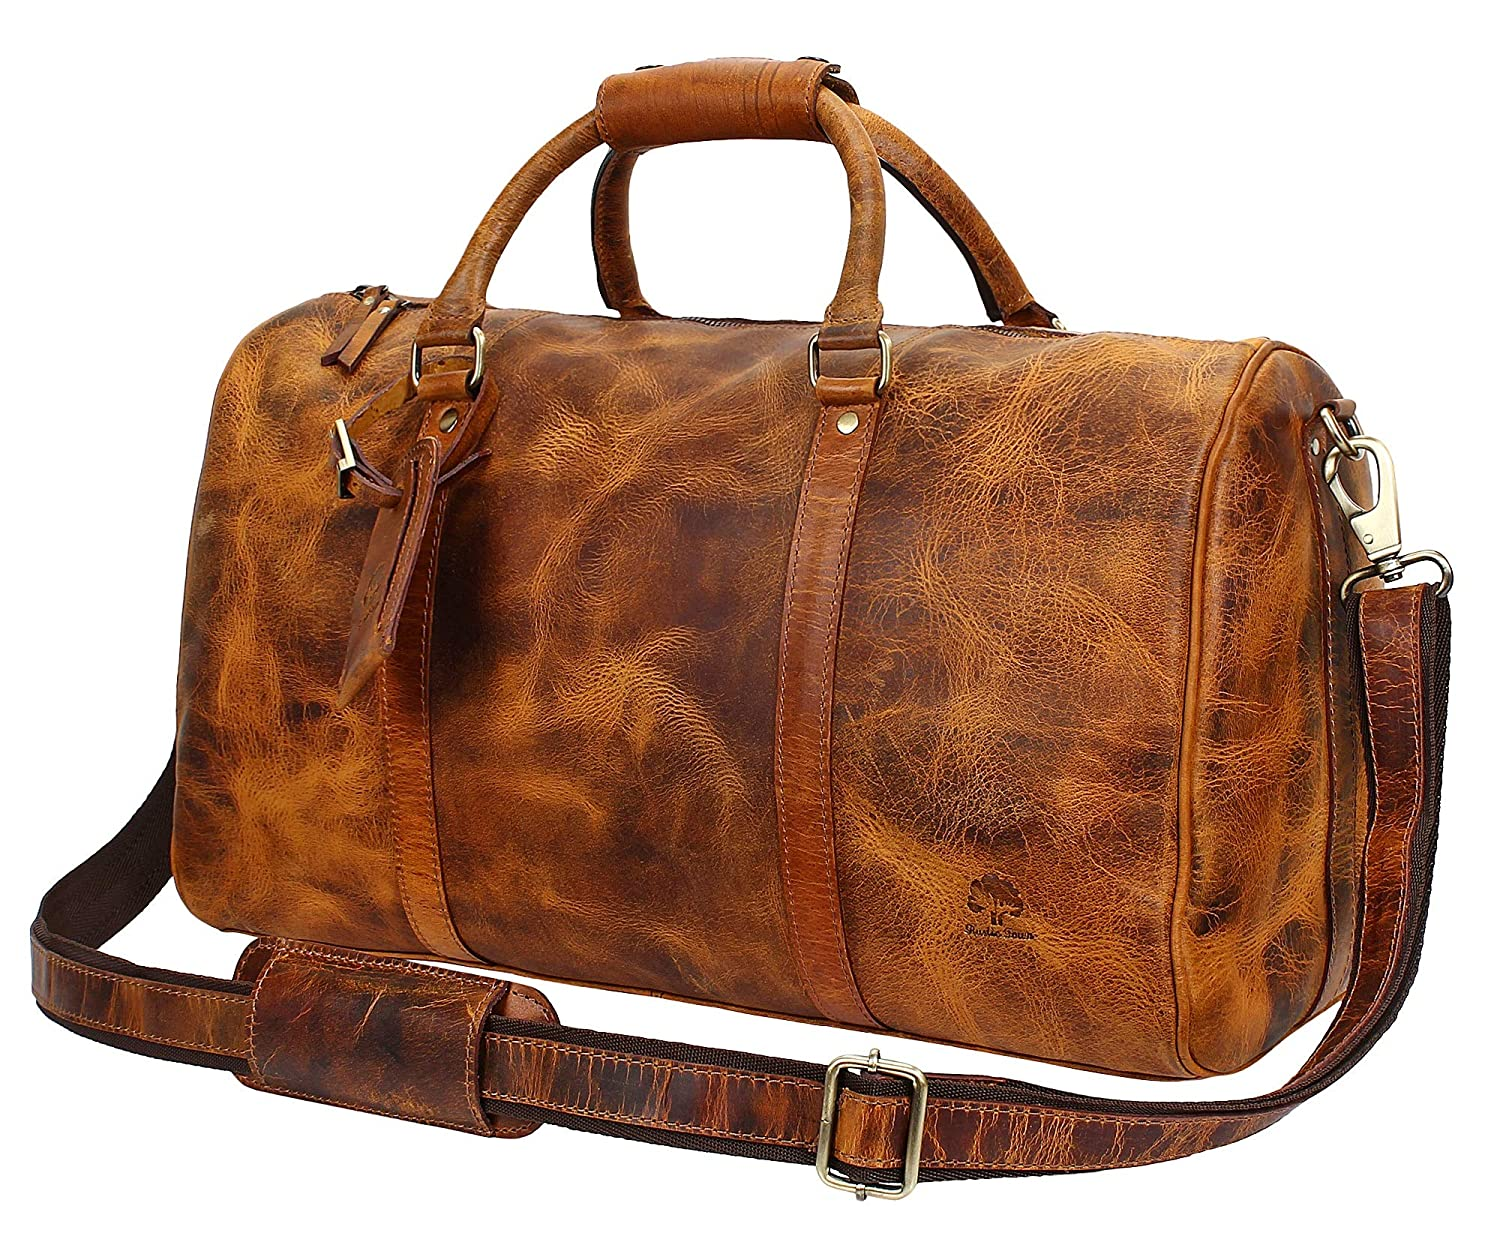 3b64d78cd Leather Duffel Bags for Men - Airplane Underseat Carry On Luggage by  RusticTown: Amazon.co.uk: Luggage